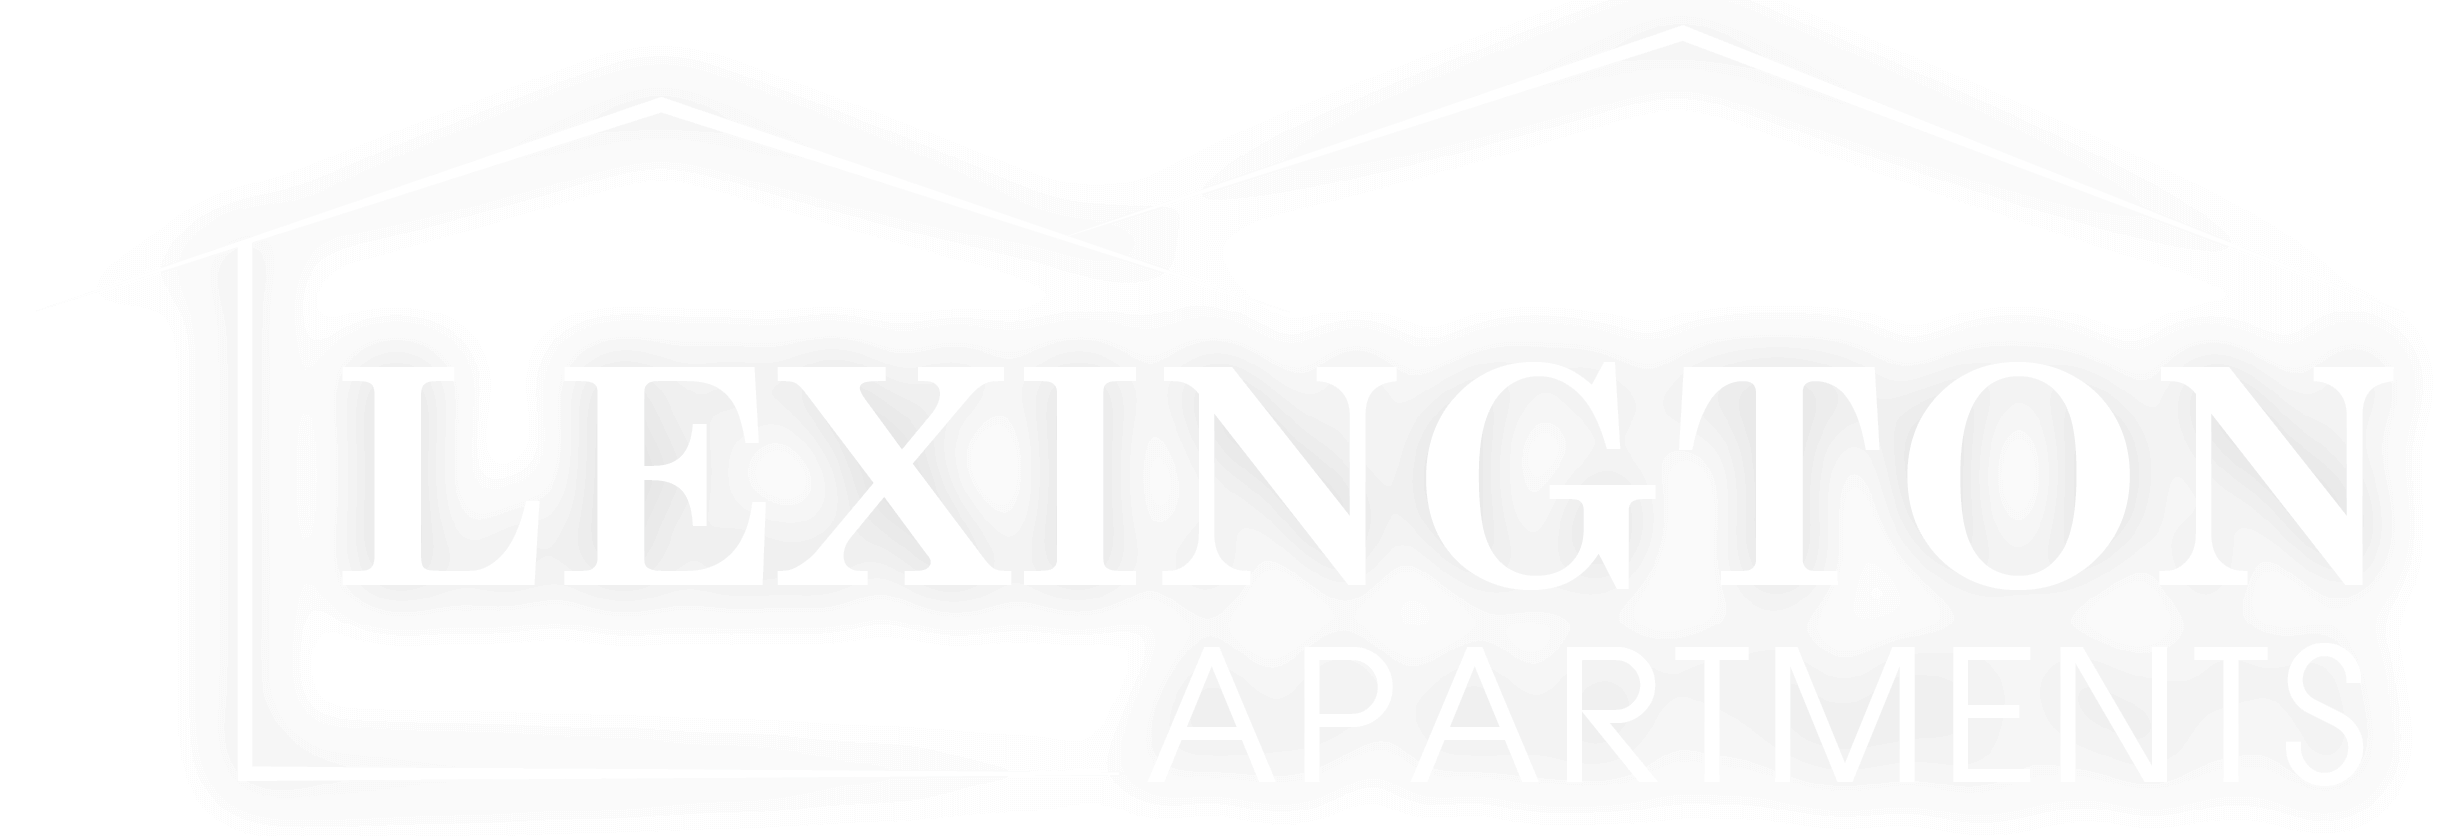 Lexington Apartments